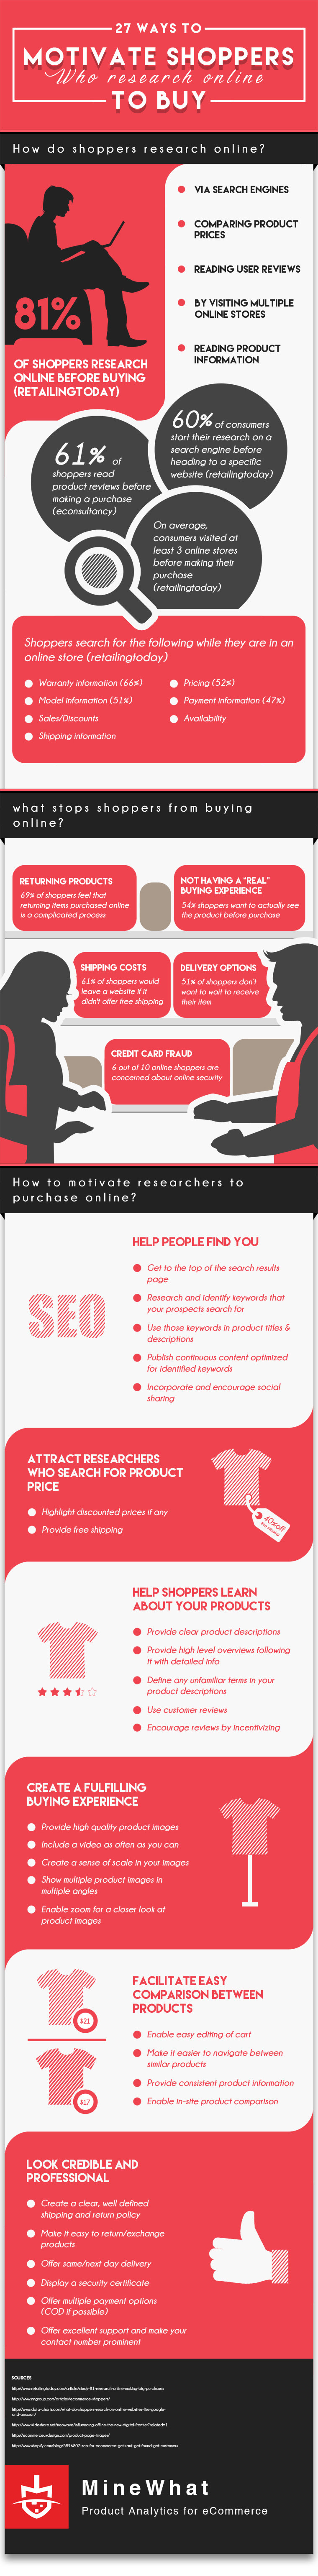 Infographic: 27 Ways To Motivate Shoppers Who Research Online To Buy